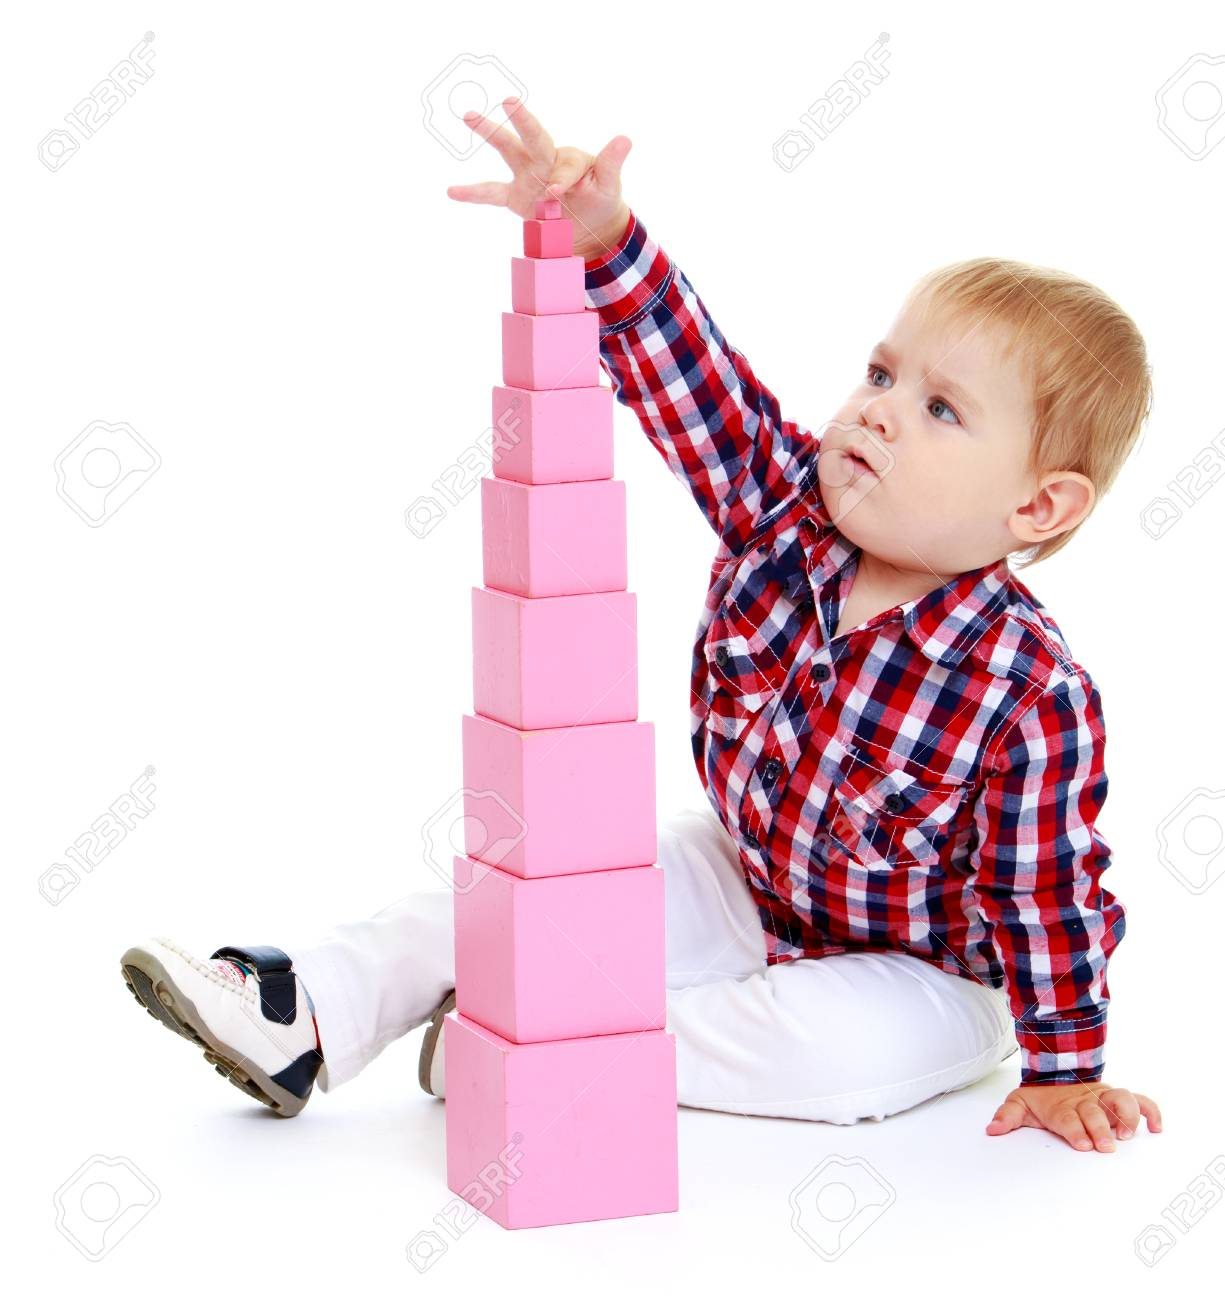 Little boy puts cubes.Early years learning a happy childhood concept.Isolated on white background. - 33594917